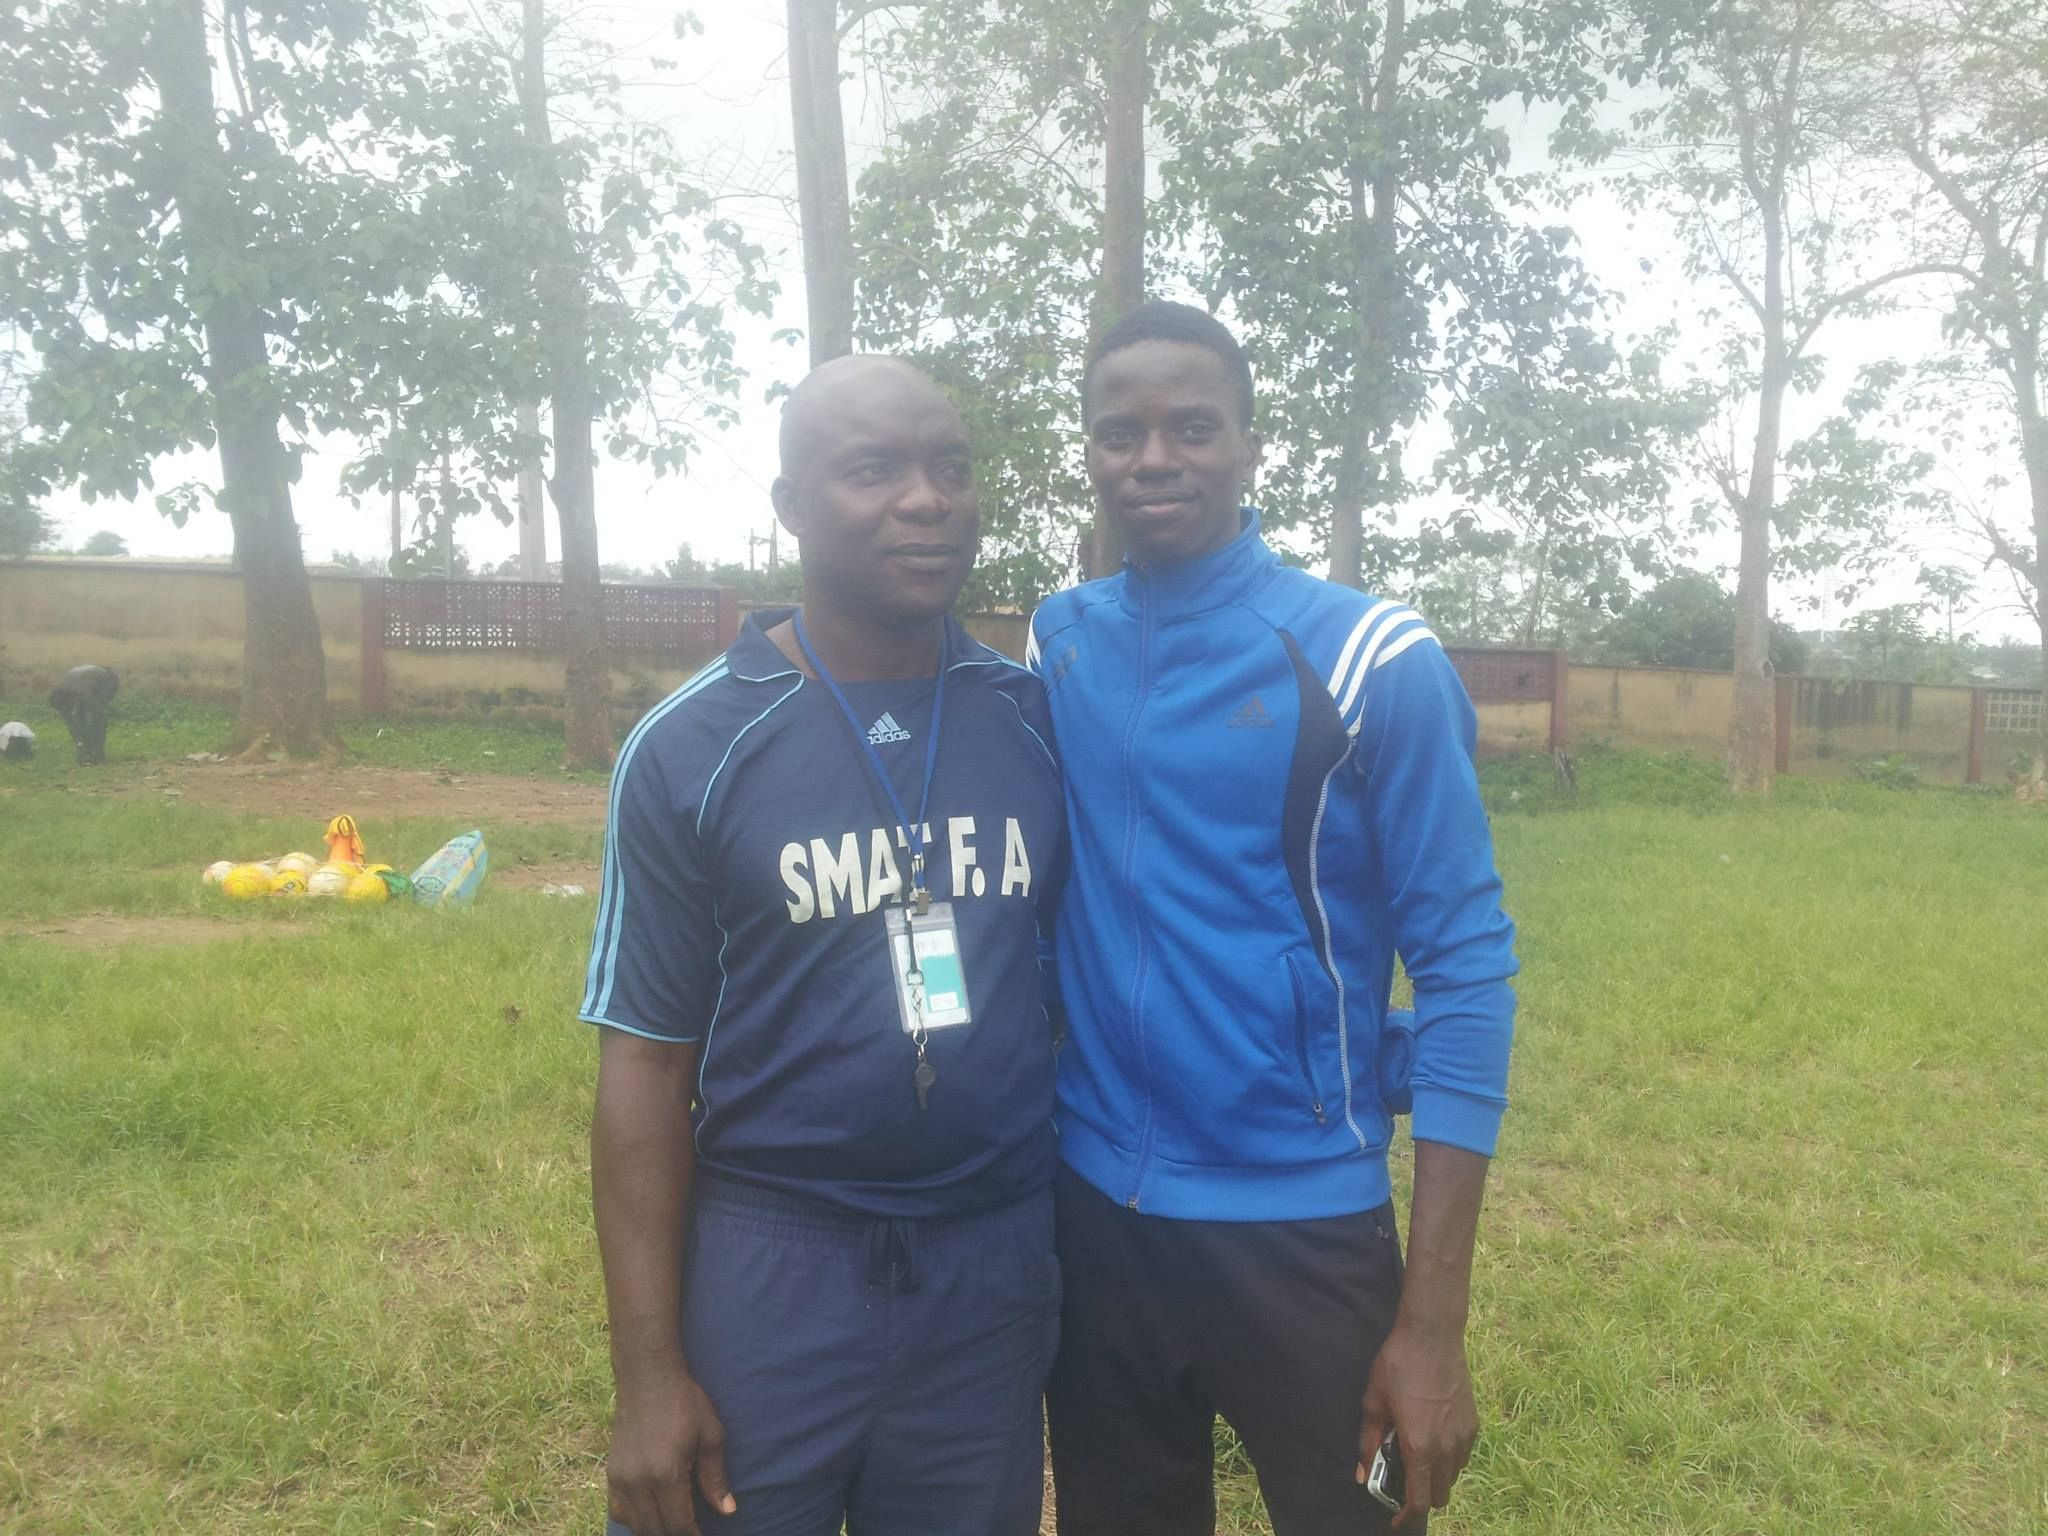 coach onagoruwa poses with one of the players